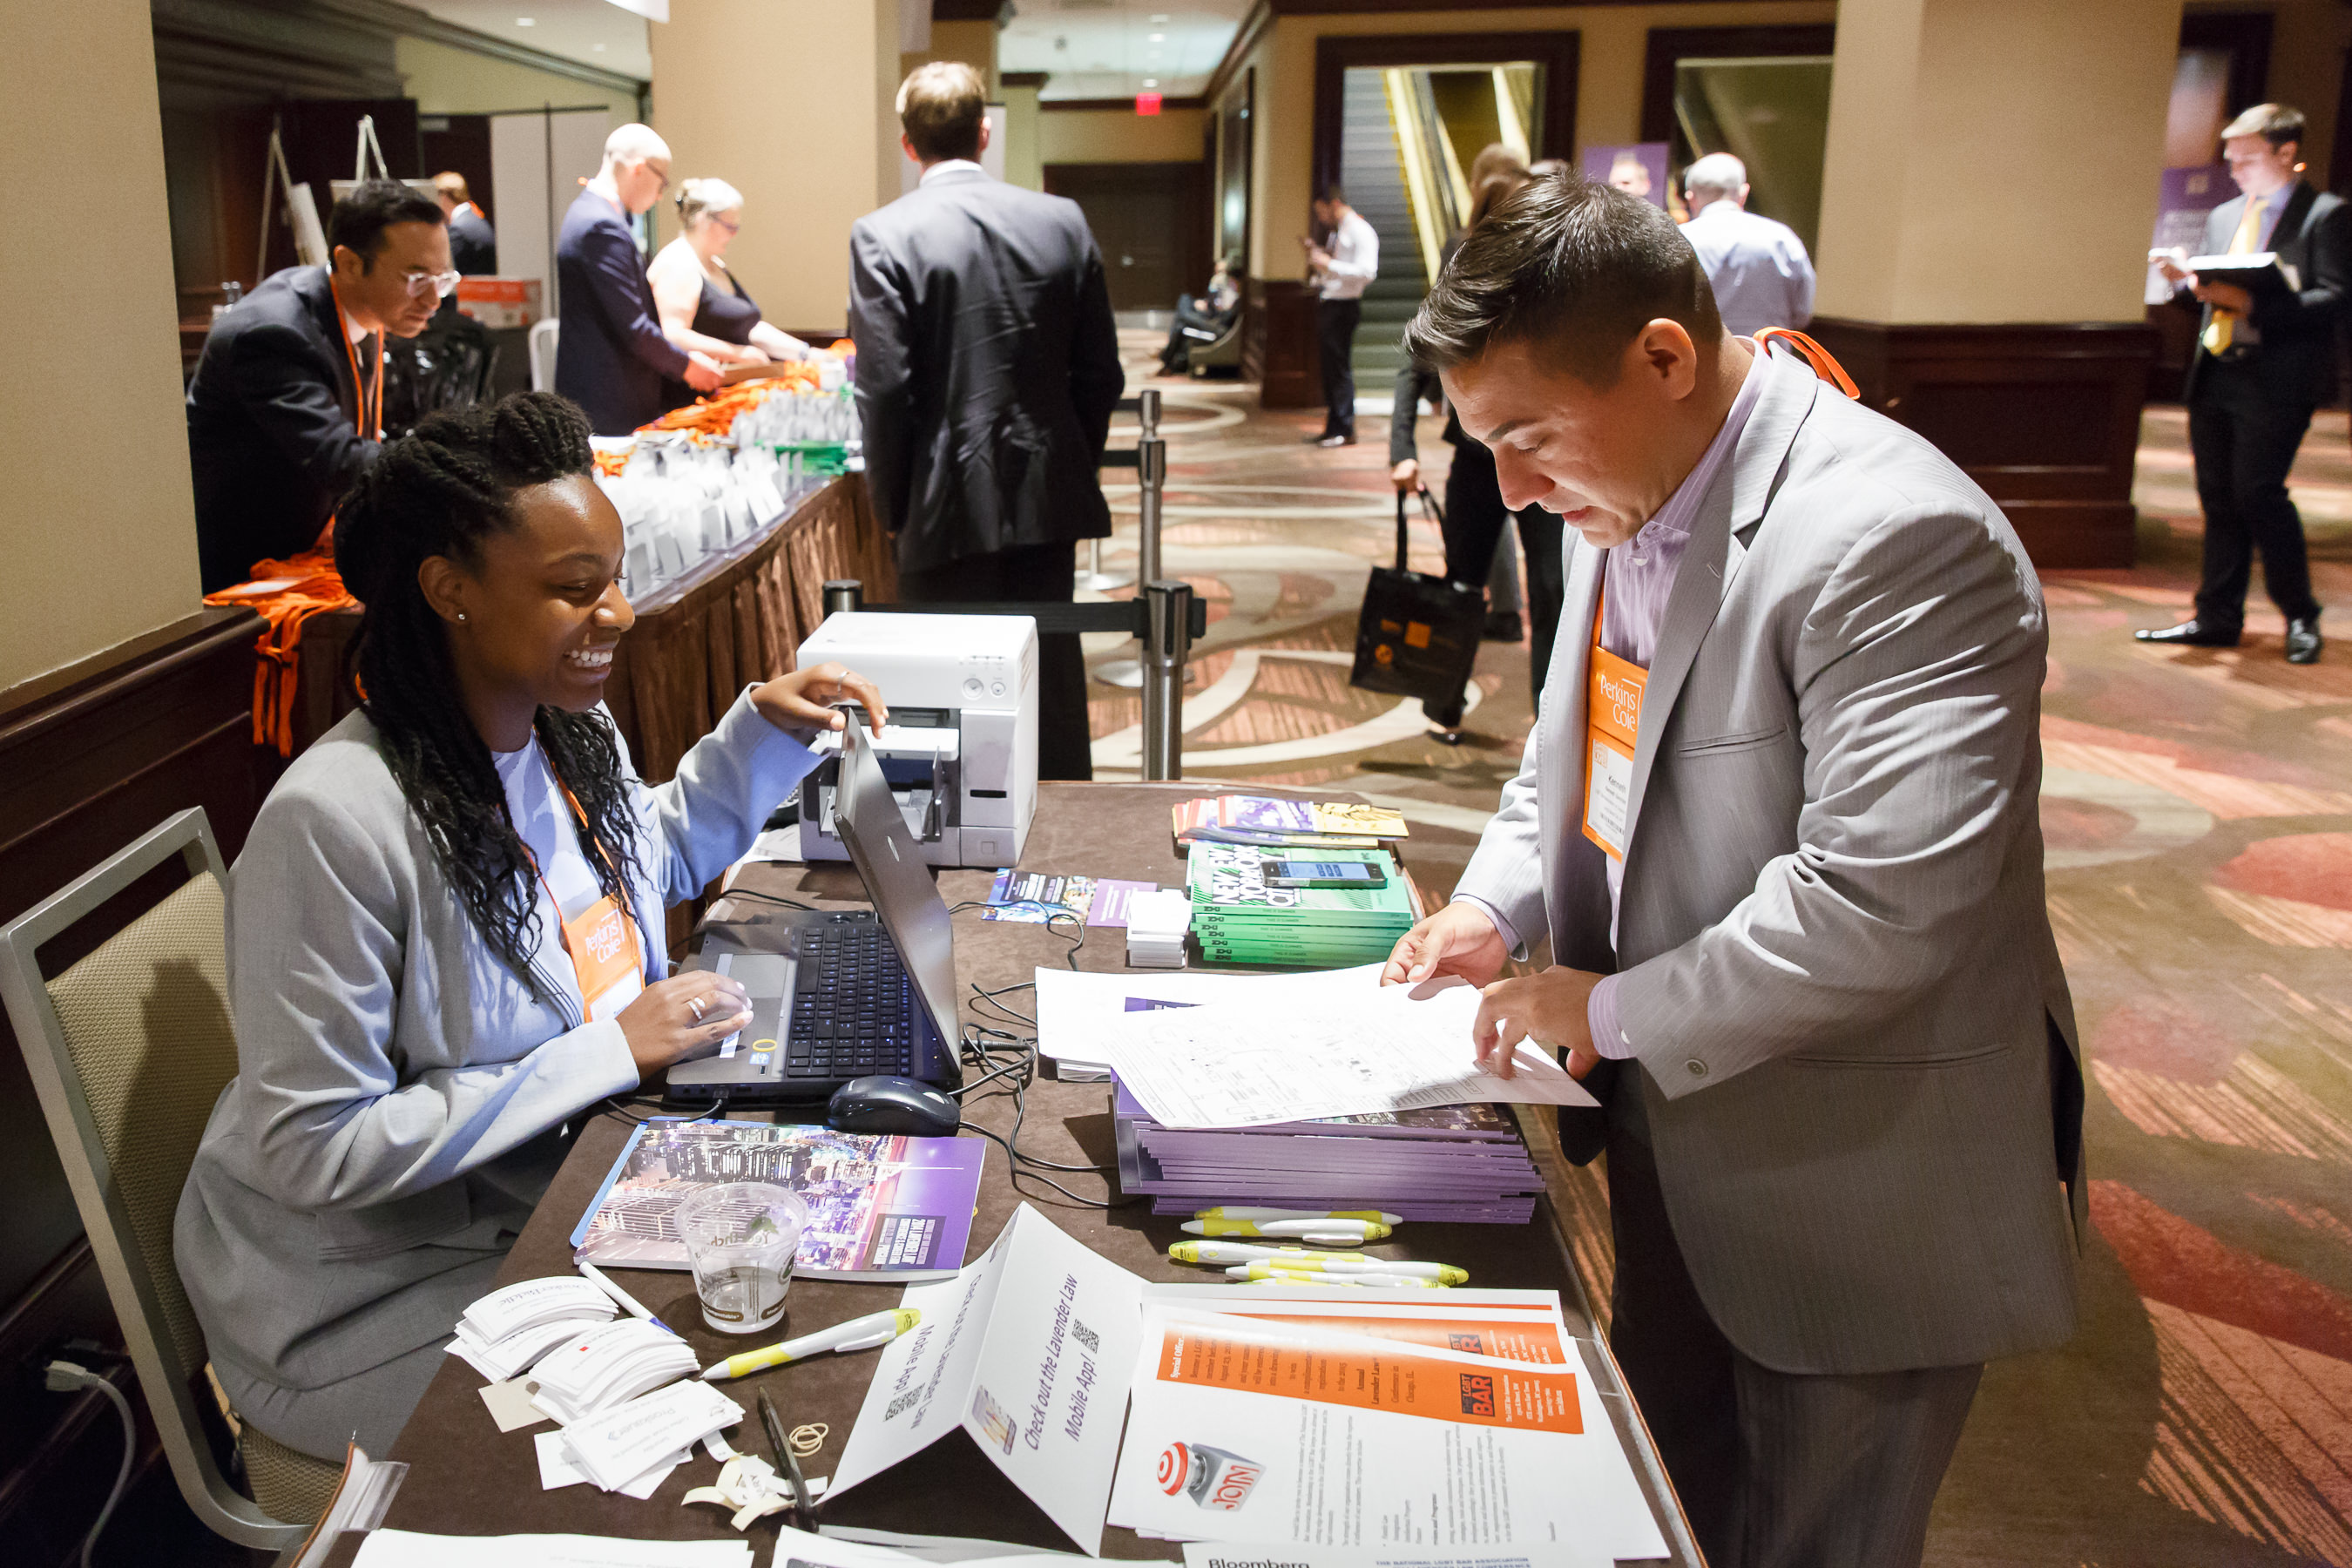 volunteer information lavender law  this year the 2017 lavender lawreg conference career fair will be held 2 4 2017 in san francisco ca the annual 1 400 person event is comprised of